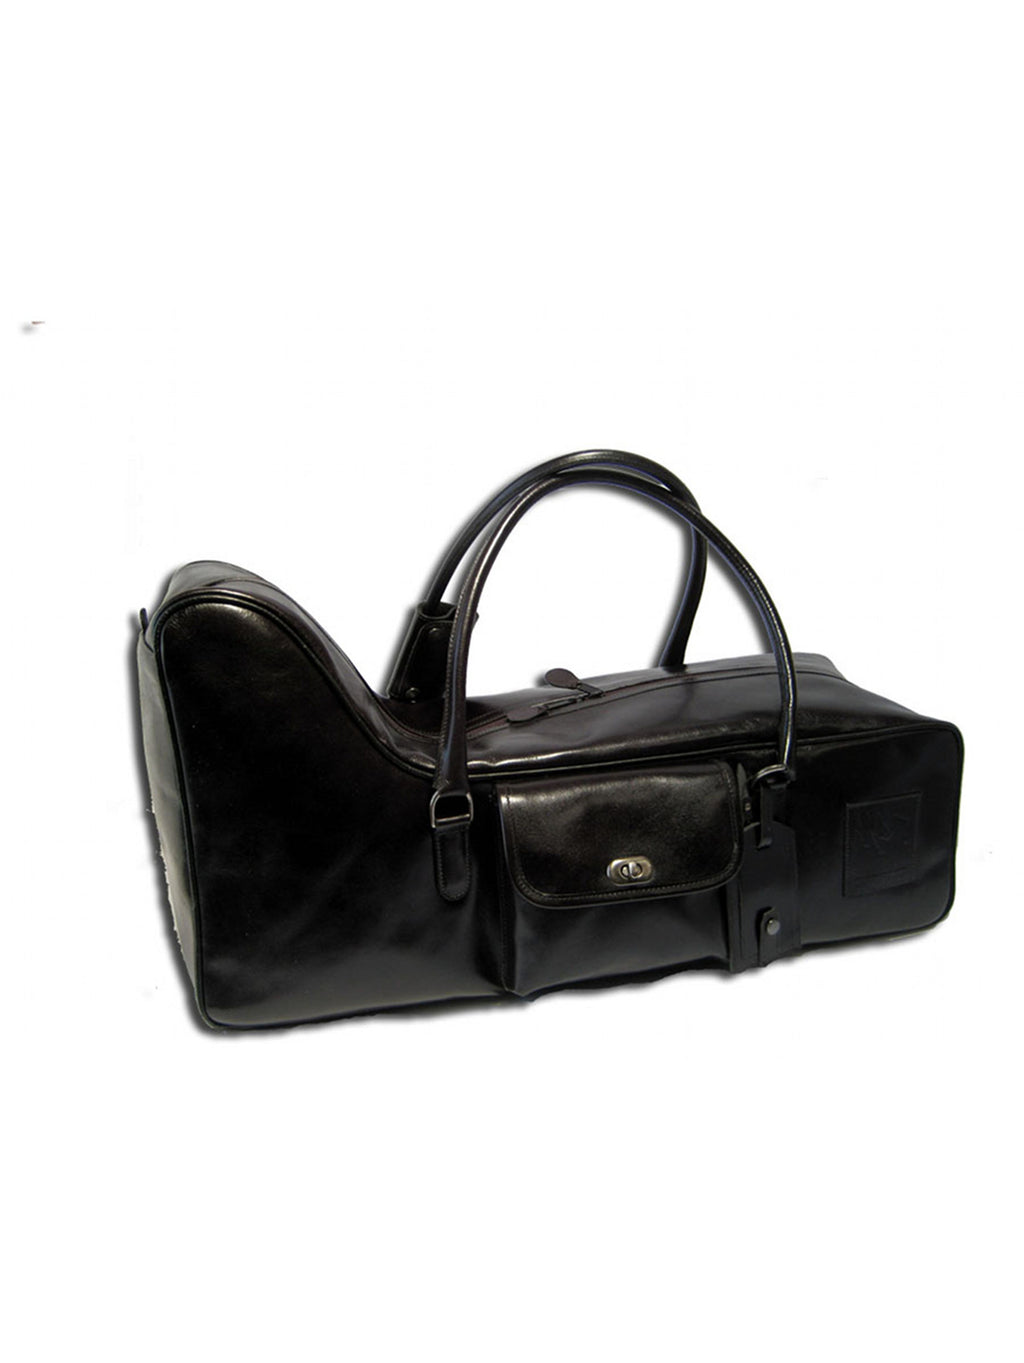 Elite Equestrian Boot Bag Classic Black for Tall Riding Boots - Buy Online at Red Scarf Equestrian Canada